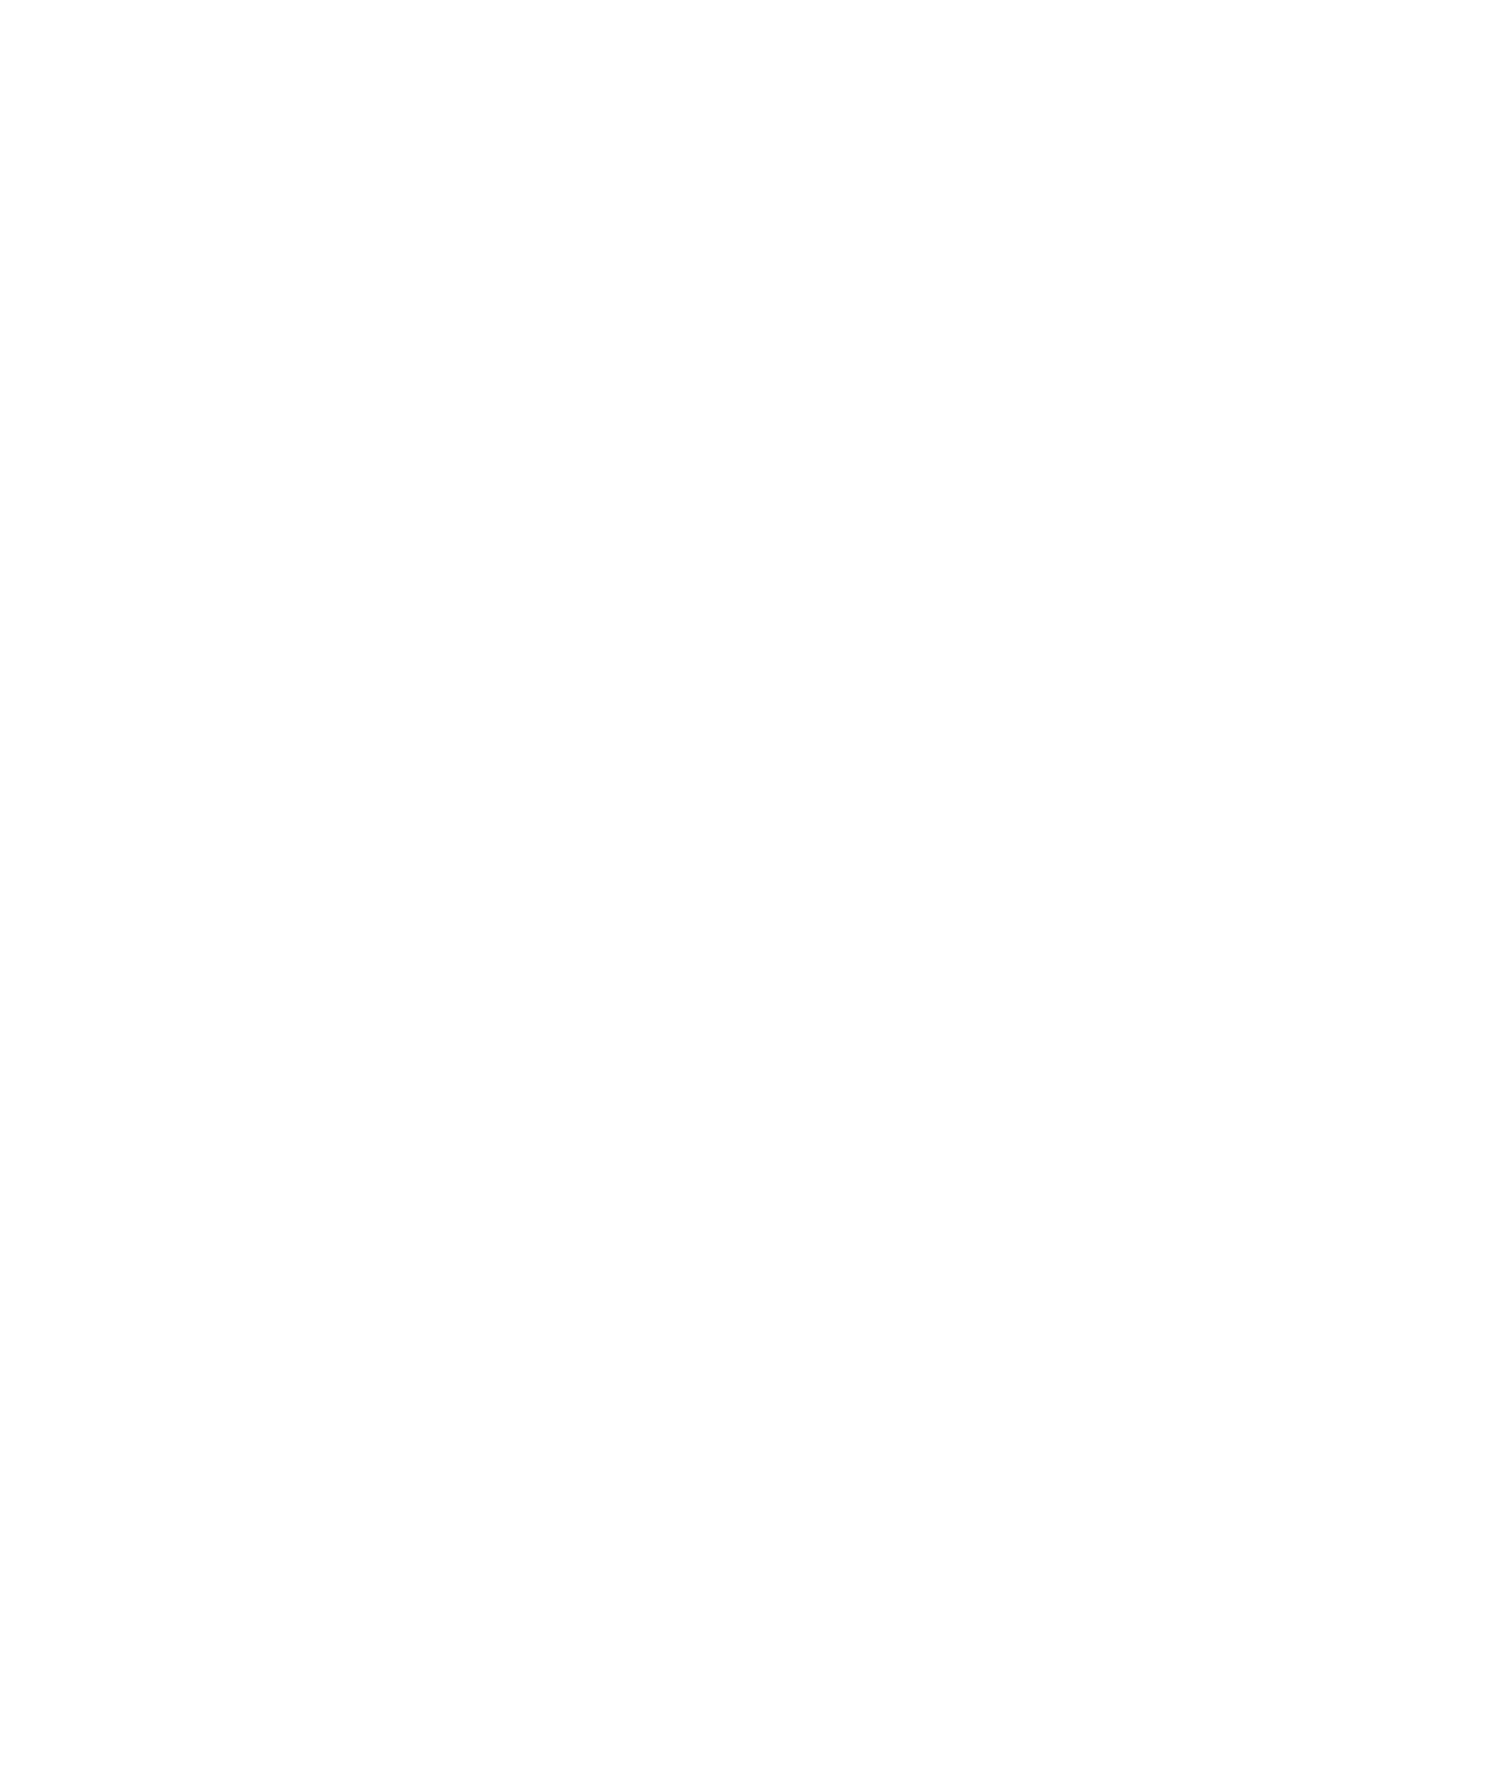 Haven Design|Build